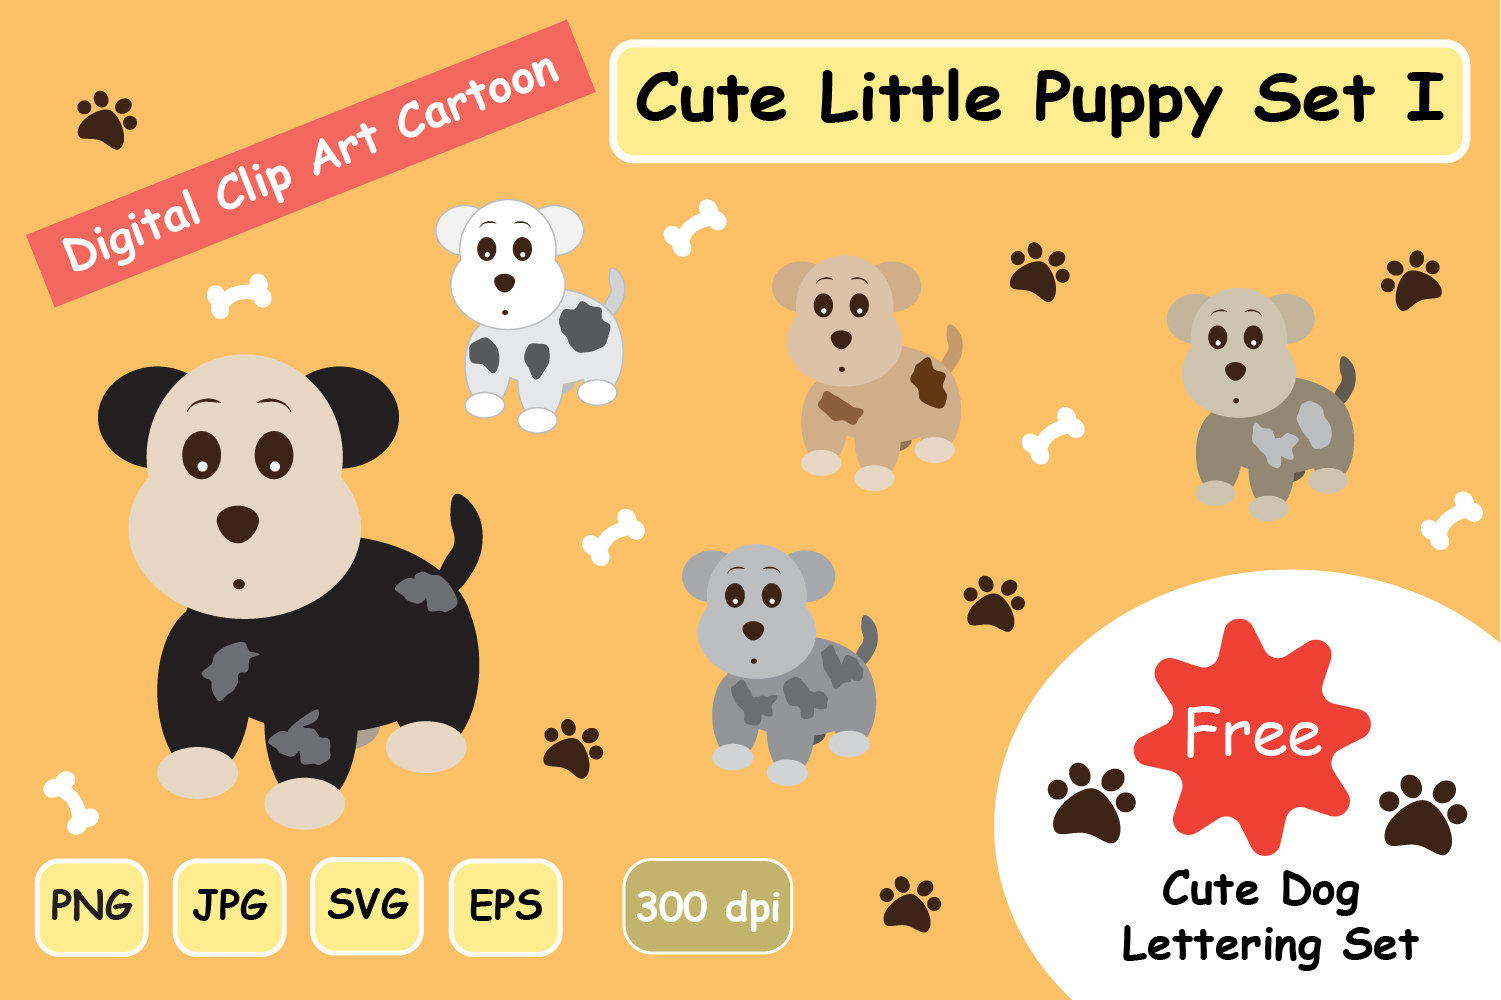 Cute Little Puppy Clipart Dog Svg Set 1 Graphic By Jennythip Creative Fabrica